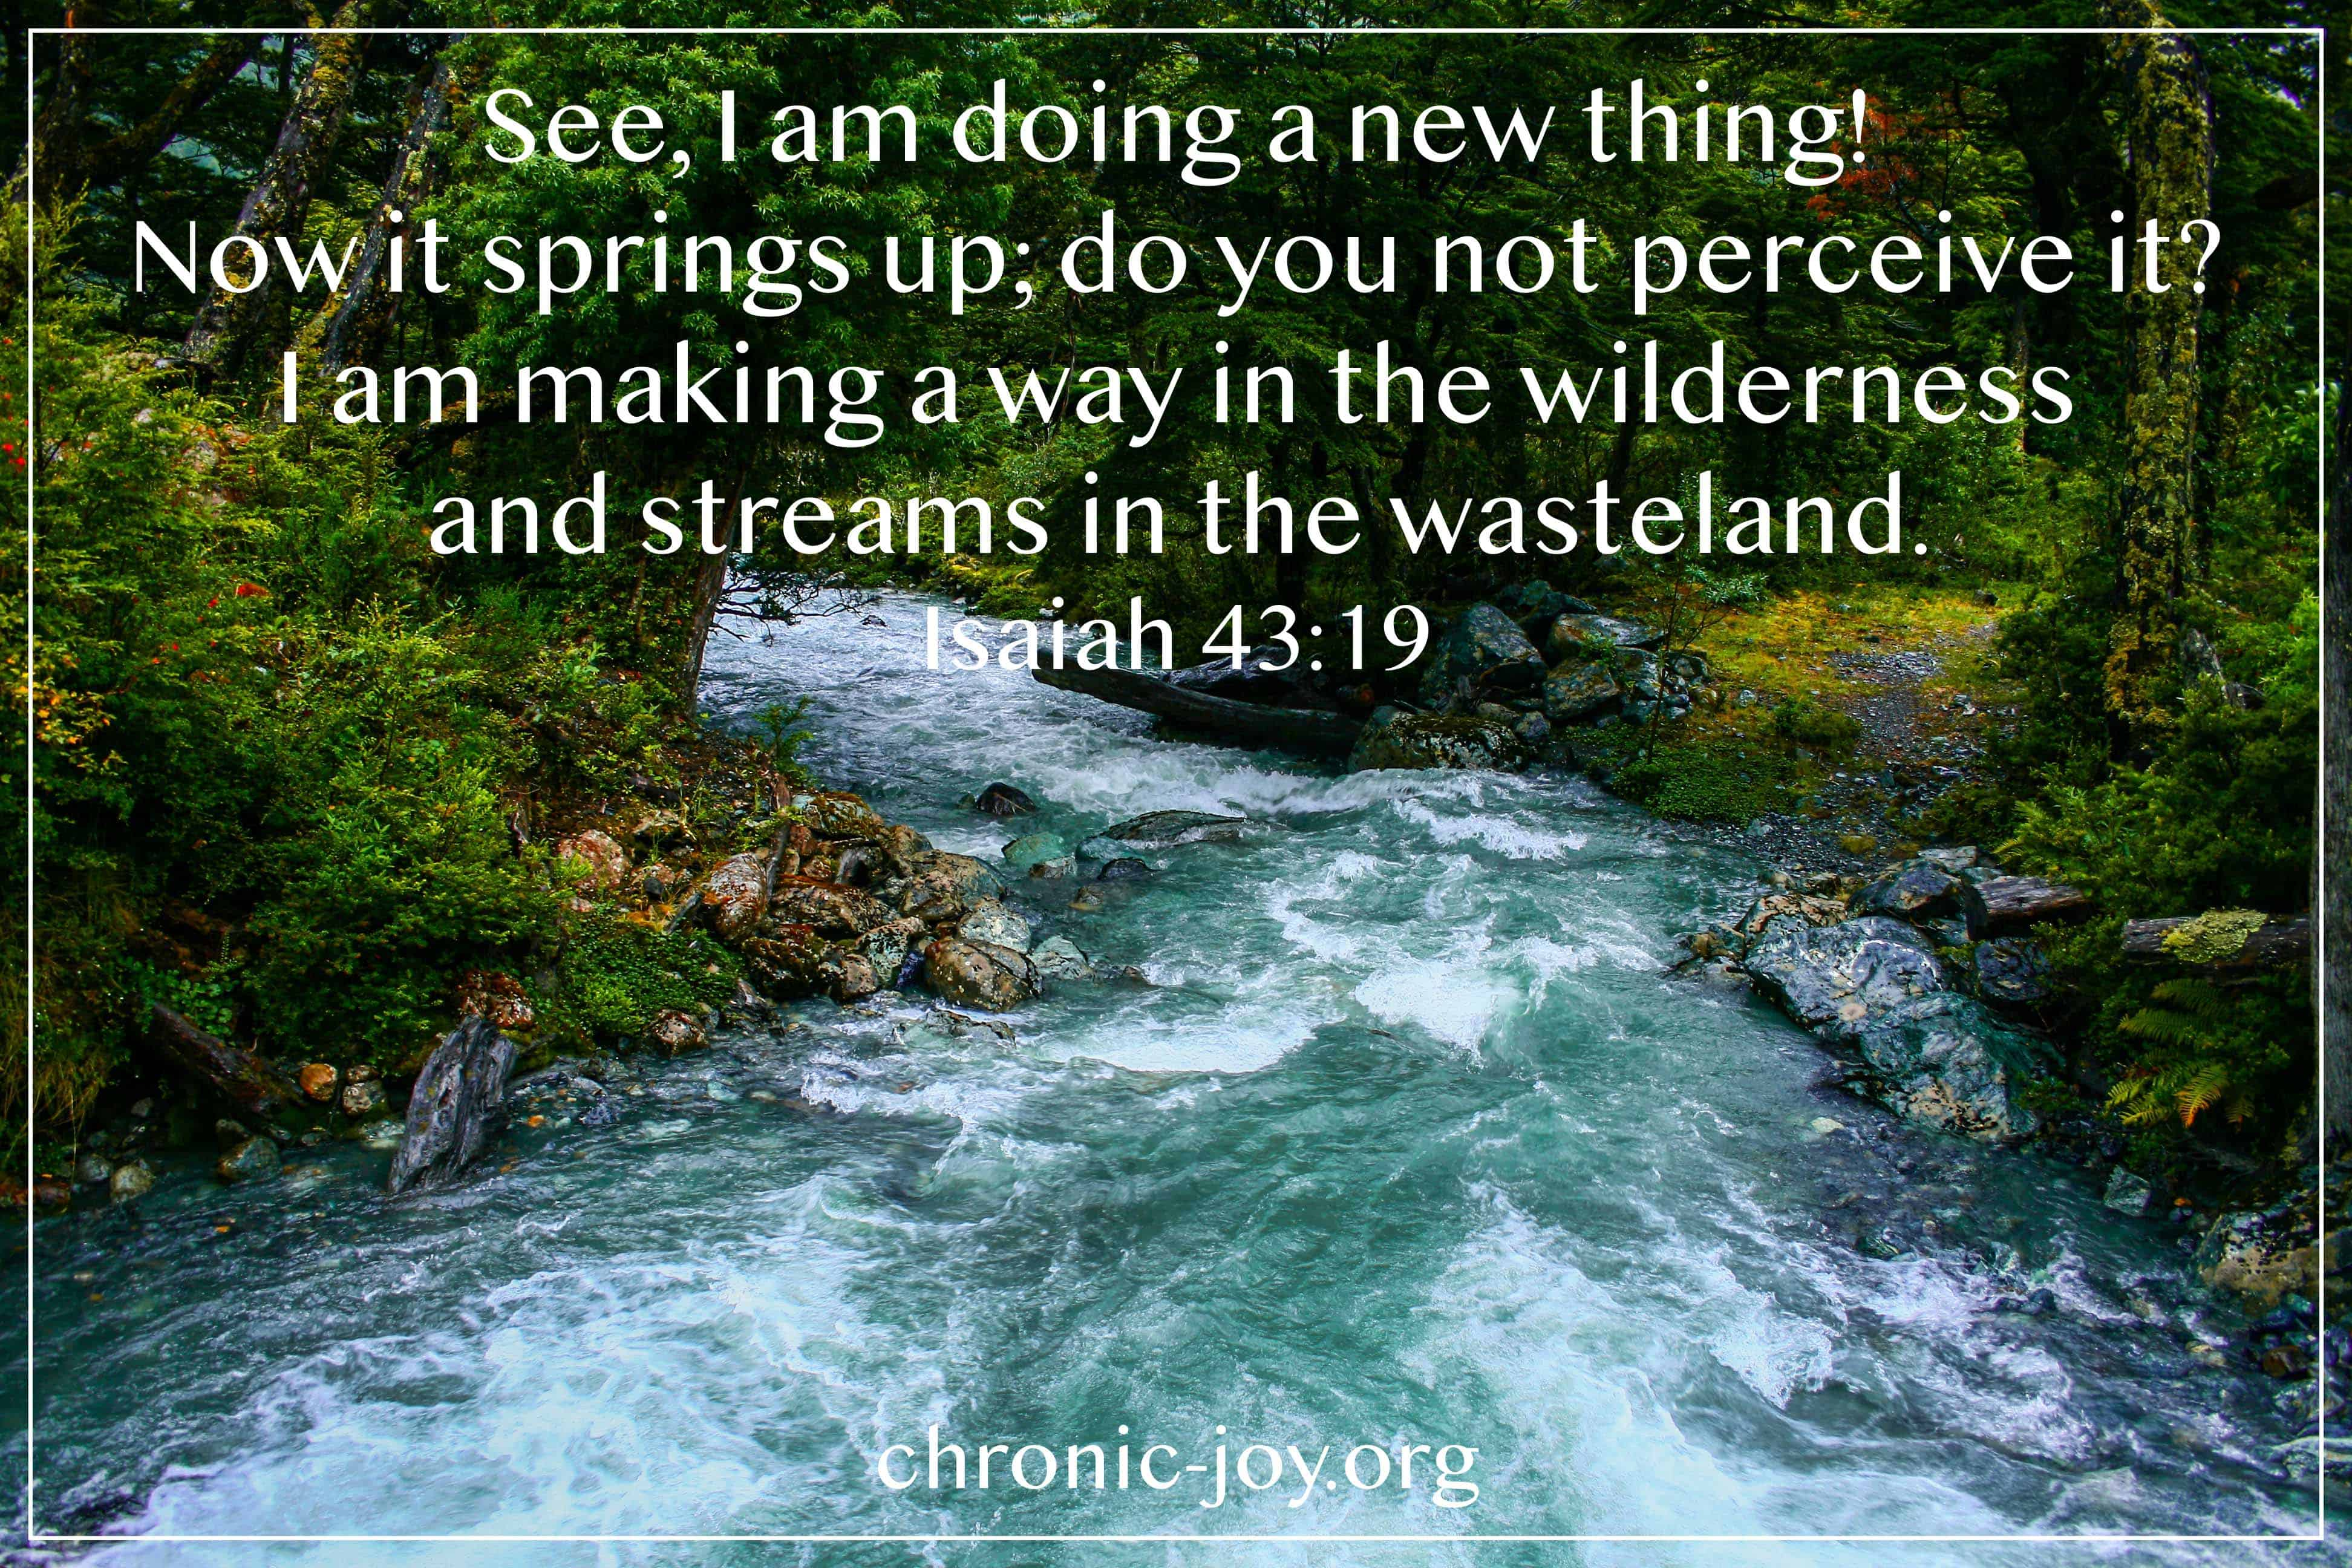 See, I am doing a new thing! Now it springs up, do you not perceive it? I am making a way in the wilderness and streams in the wasteland. Isaiah 43:19